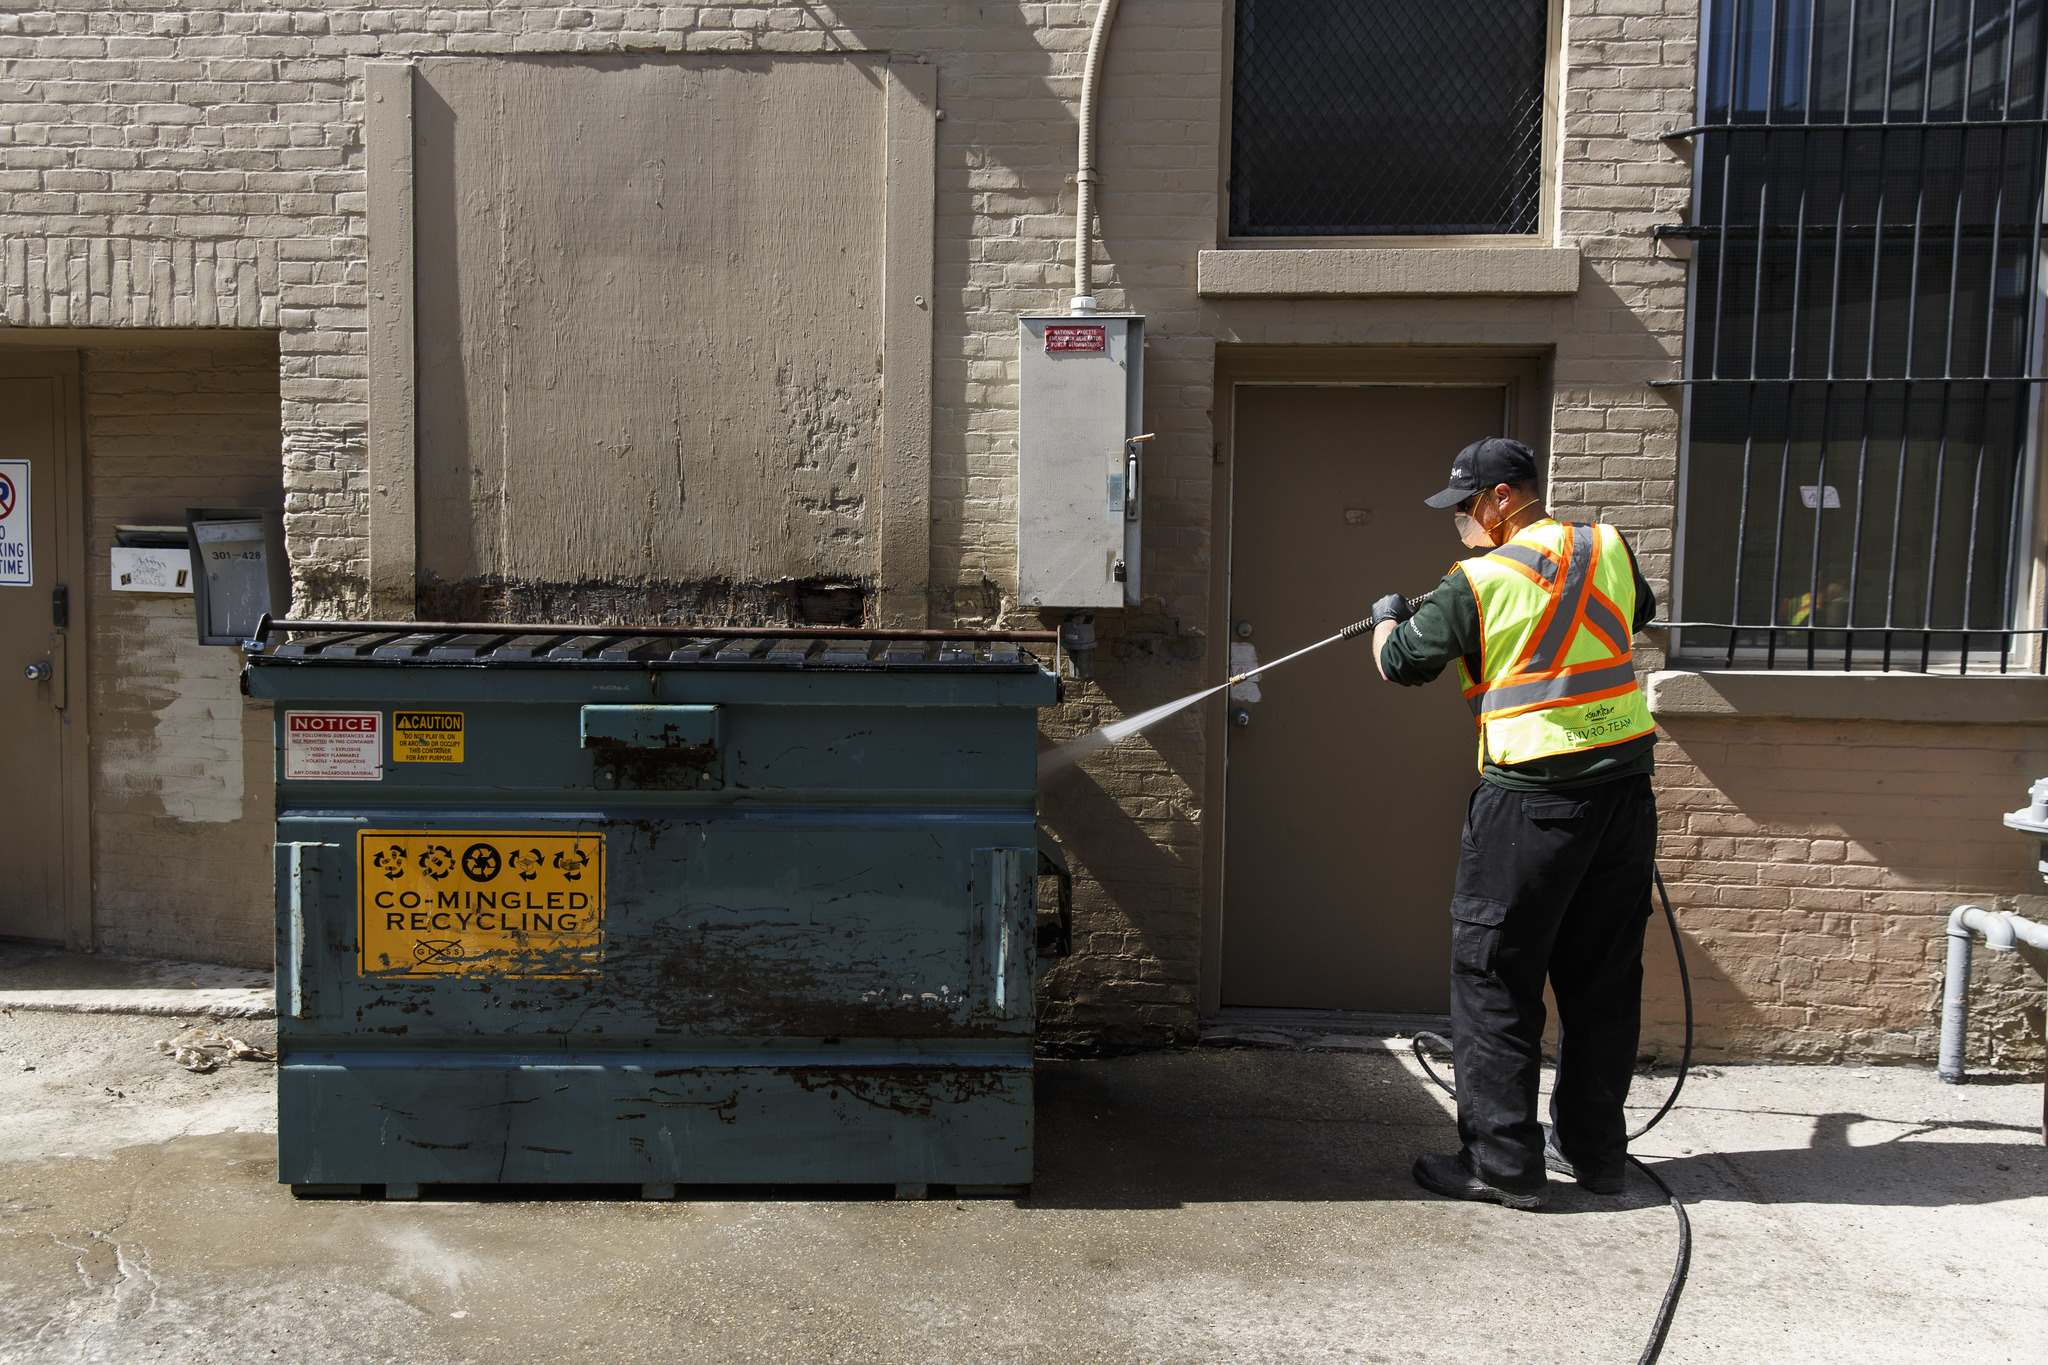 MIKE DEAL / WINNIPEG FREE PRESS</p><p>Chris Morgan, a member of the Downtown Winnipeg BIZ Enviro Team, sprays down a problem area for public urination in a back alley near Portage Avenue.</p>